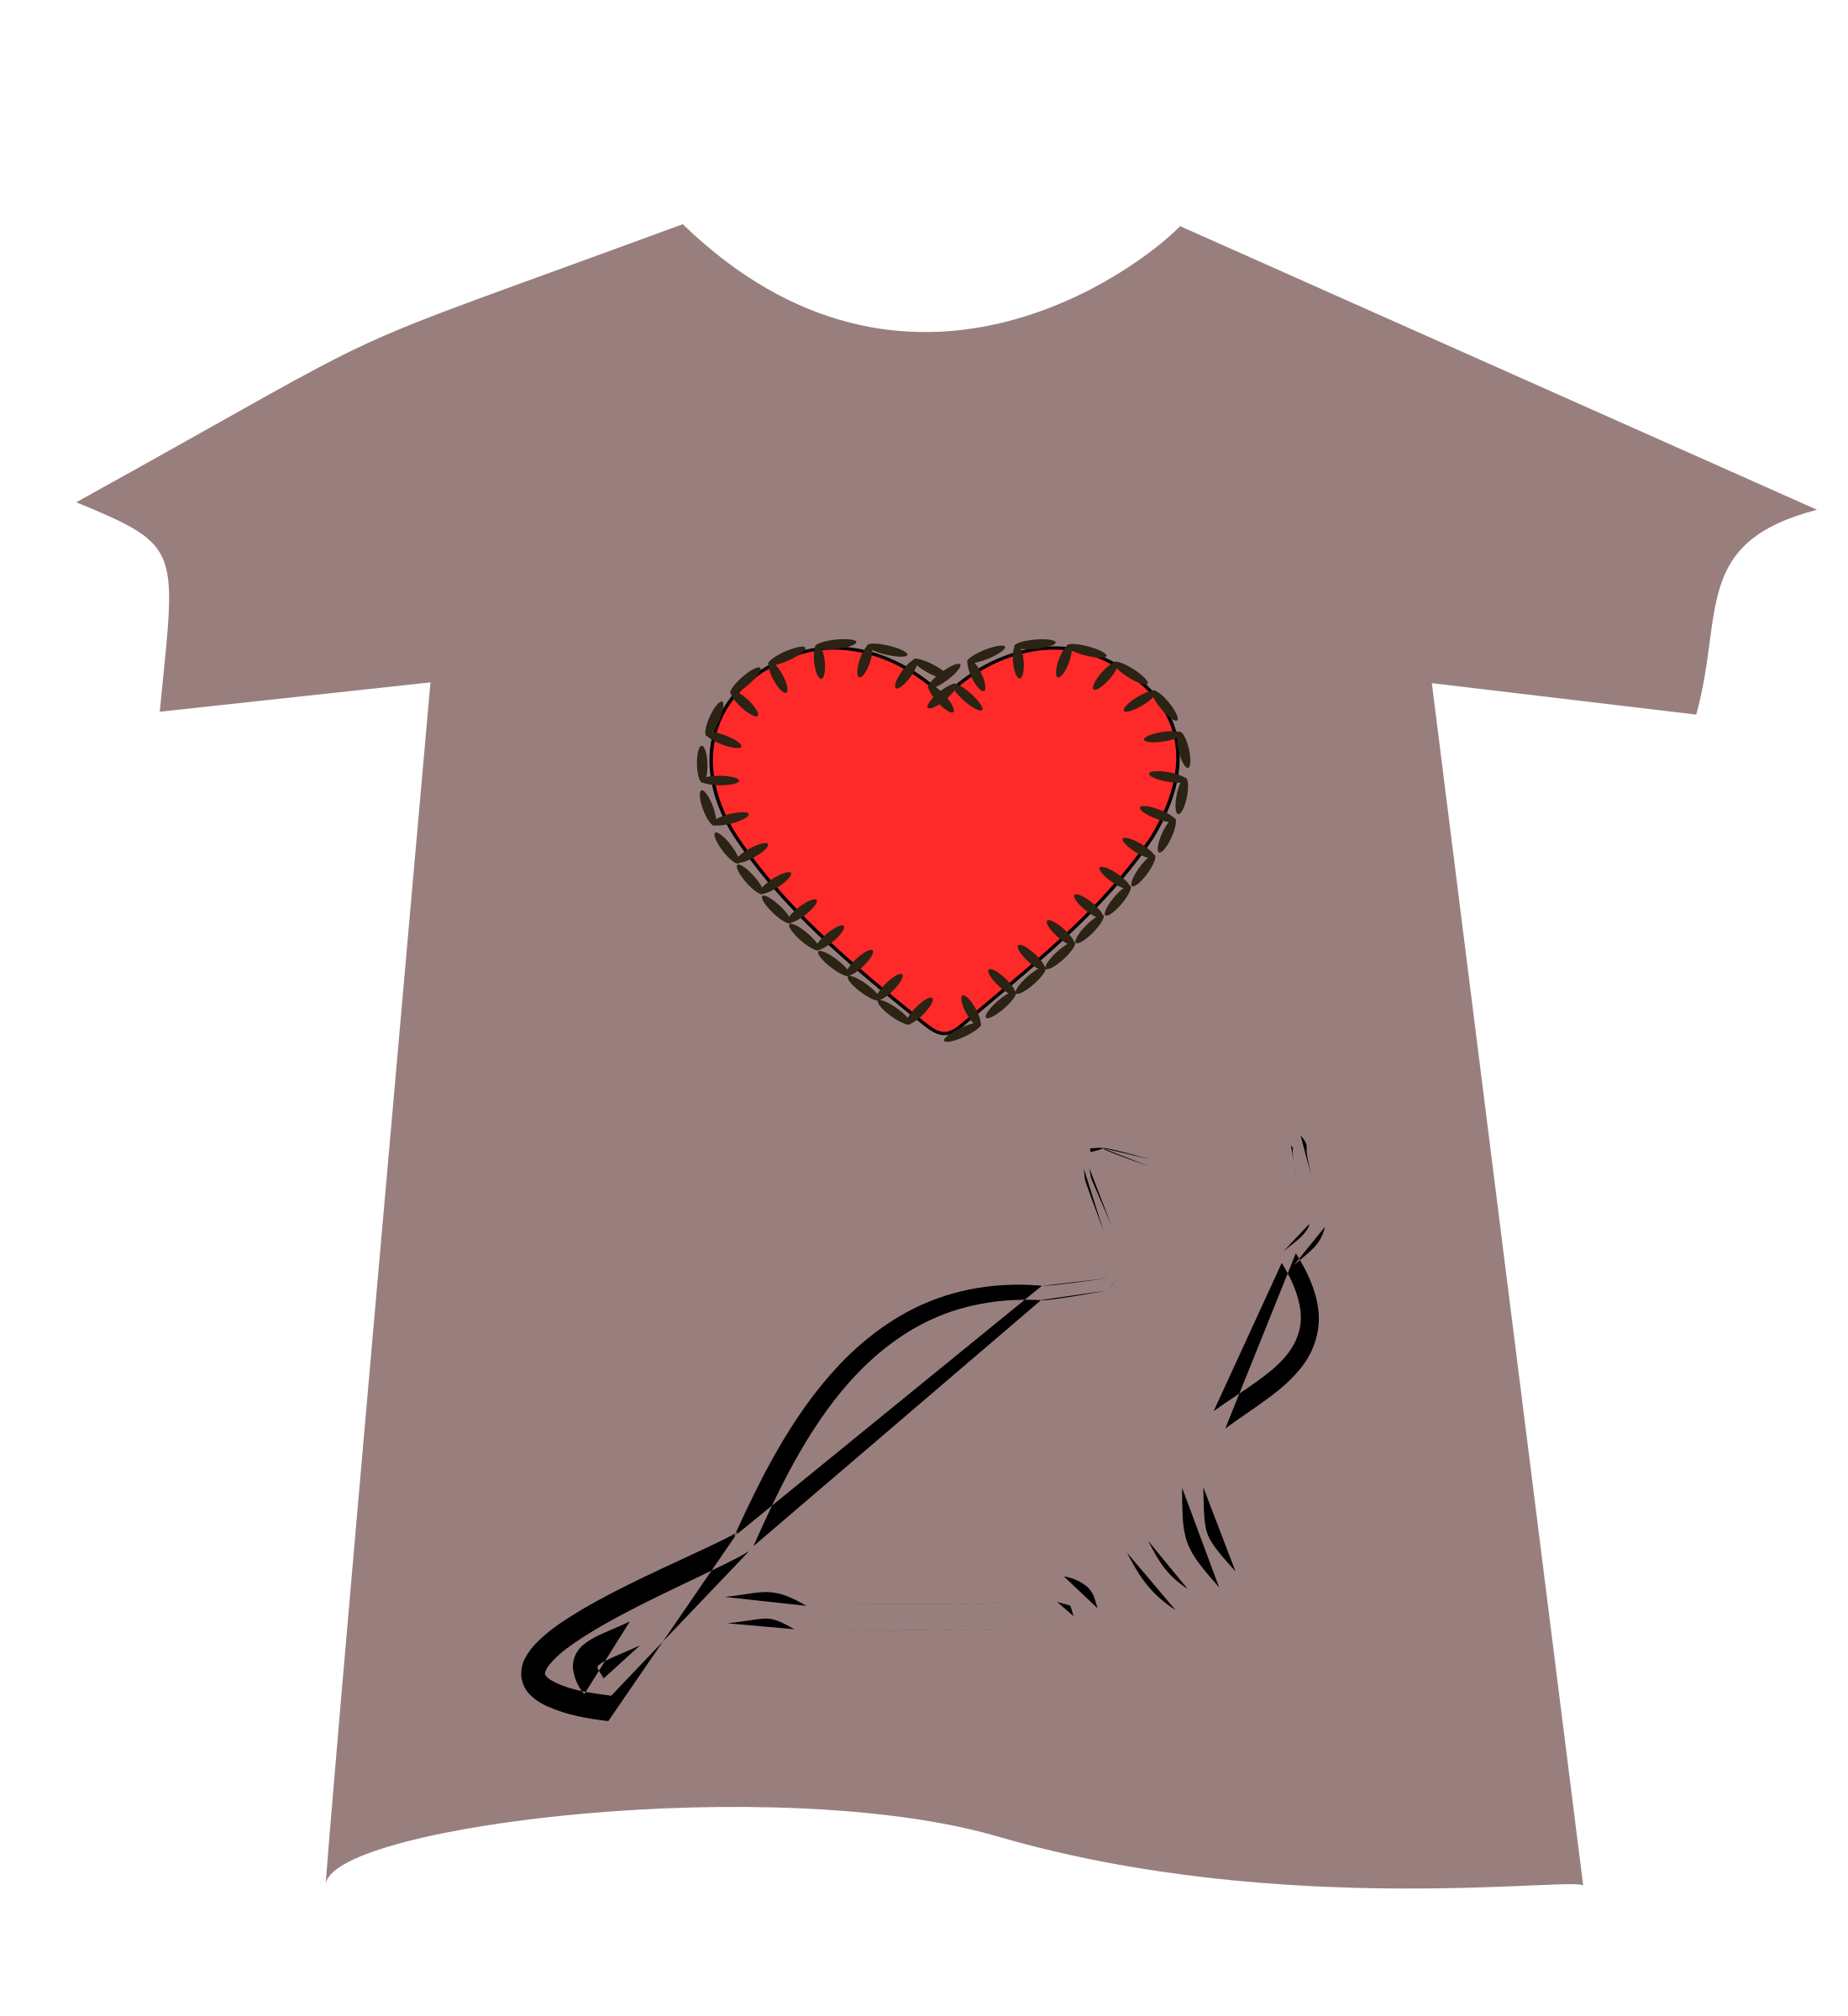 Tshirt-heart by yamachem